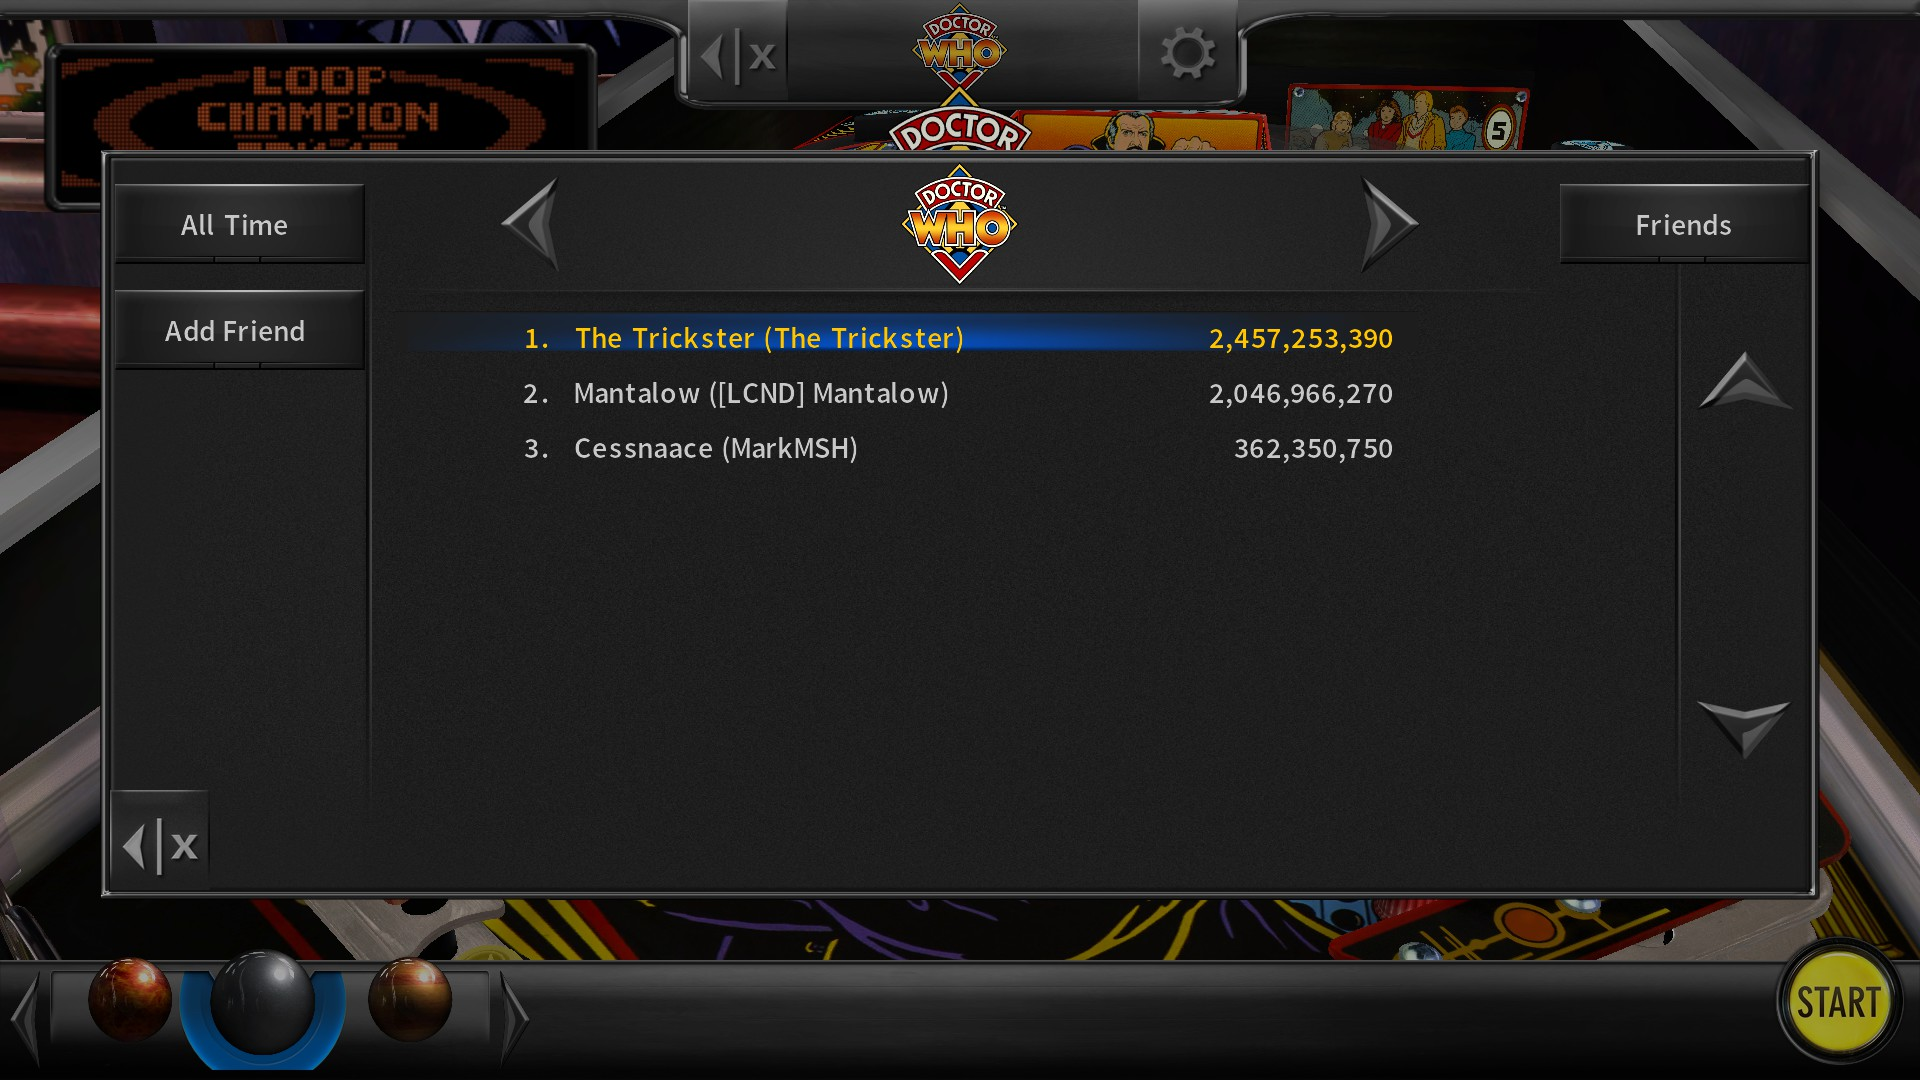 Pinball Arcade: Doctor Who 2,457,253,390 points